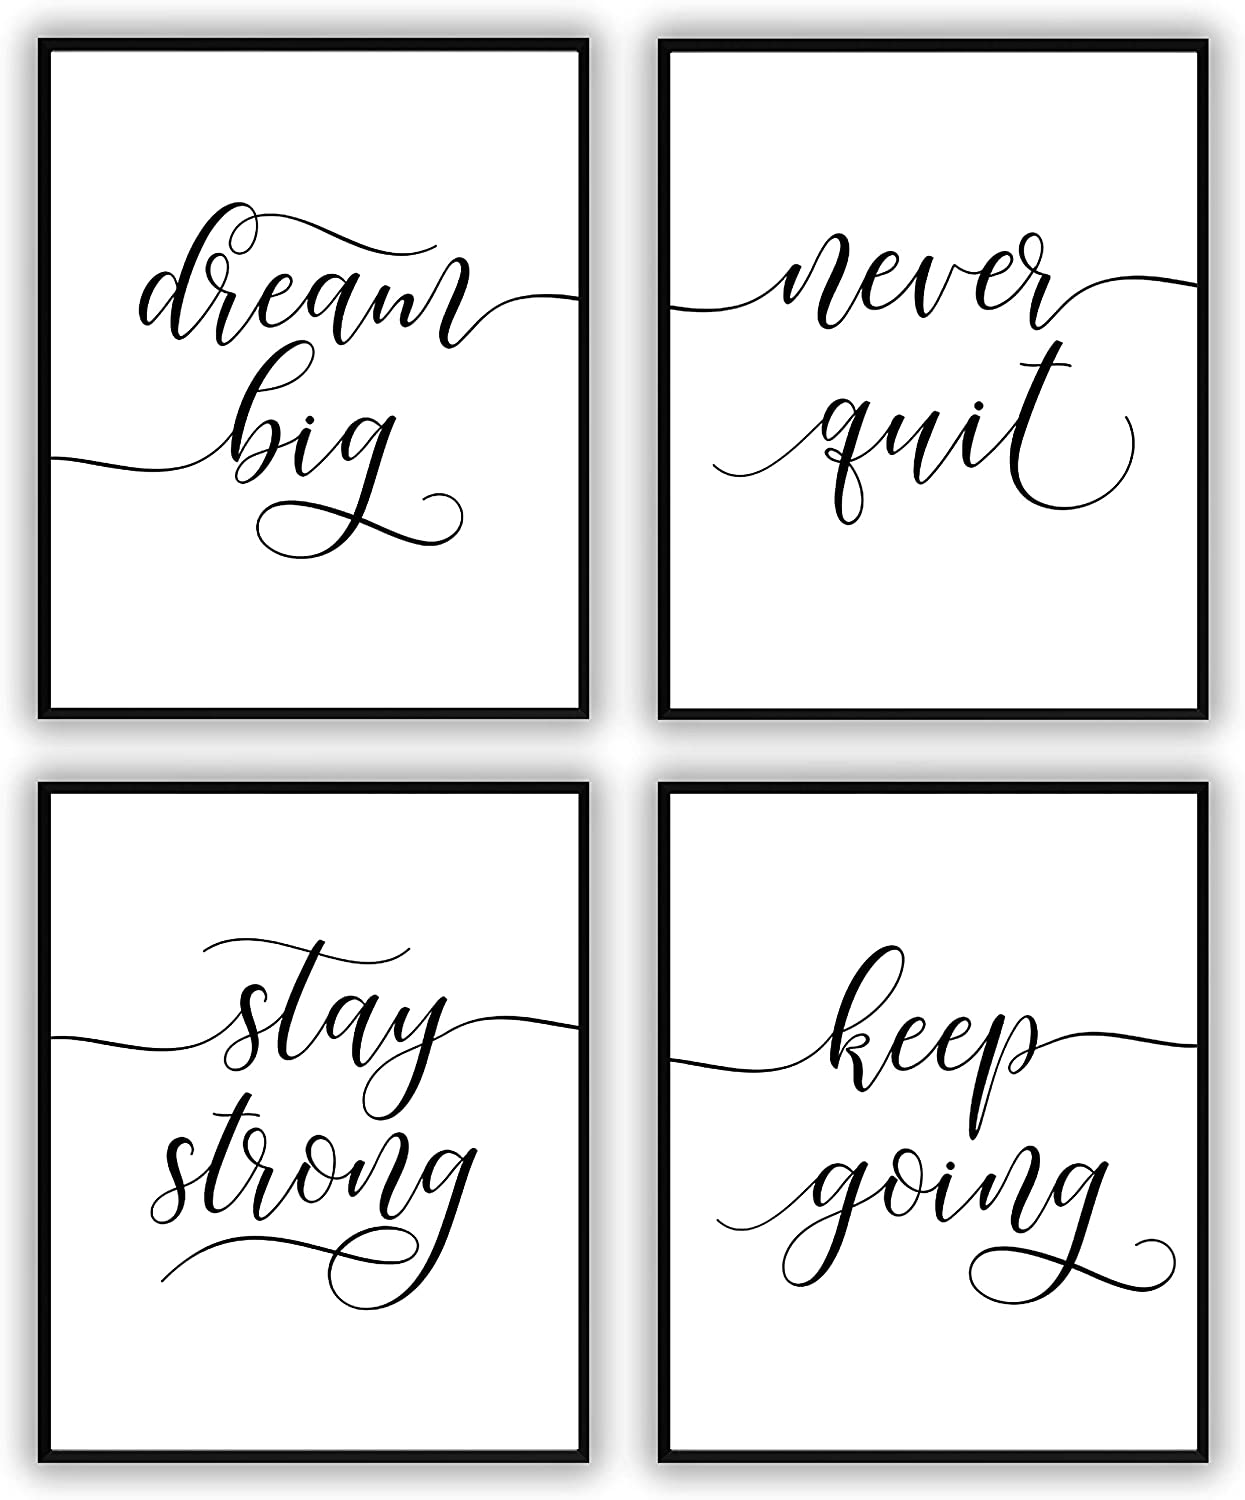 Motivational Wall Art, Inspirational Wall Art Decor For Office bedroom and living room, Positive Quote & Saying Office Decor - Black and White Picture Wall Poster Prints (8X10 Set of 4 Unframed)